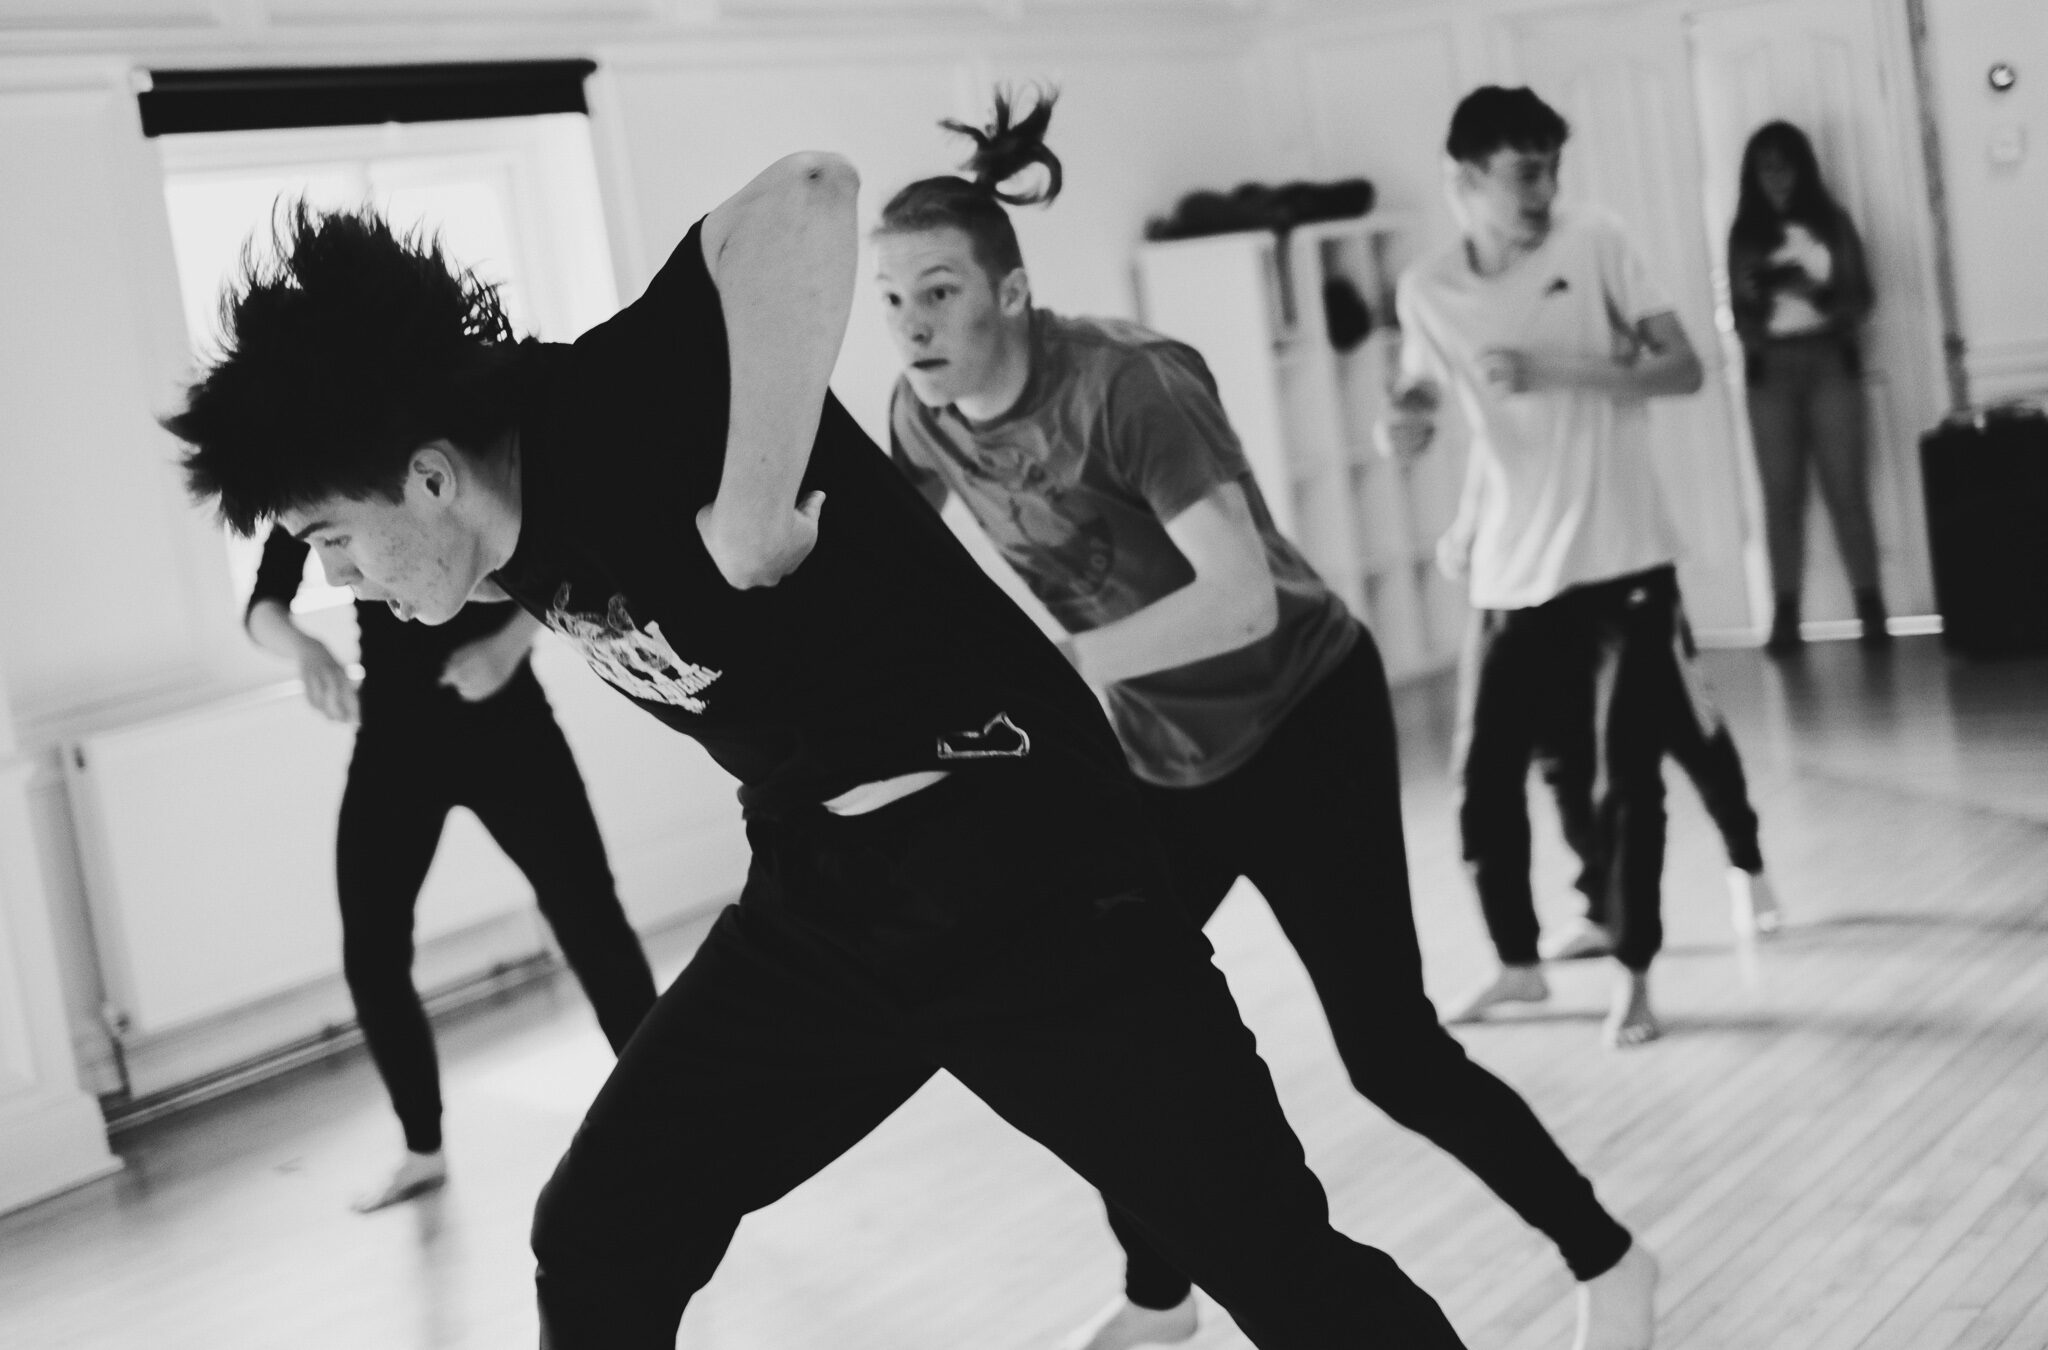 A group of young men dance in a rehearsal studio. The figure at the front throws himself forward with his arms raised